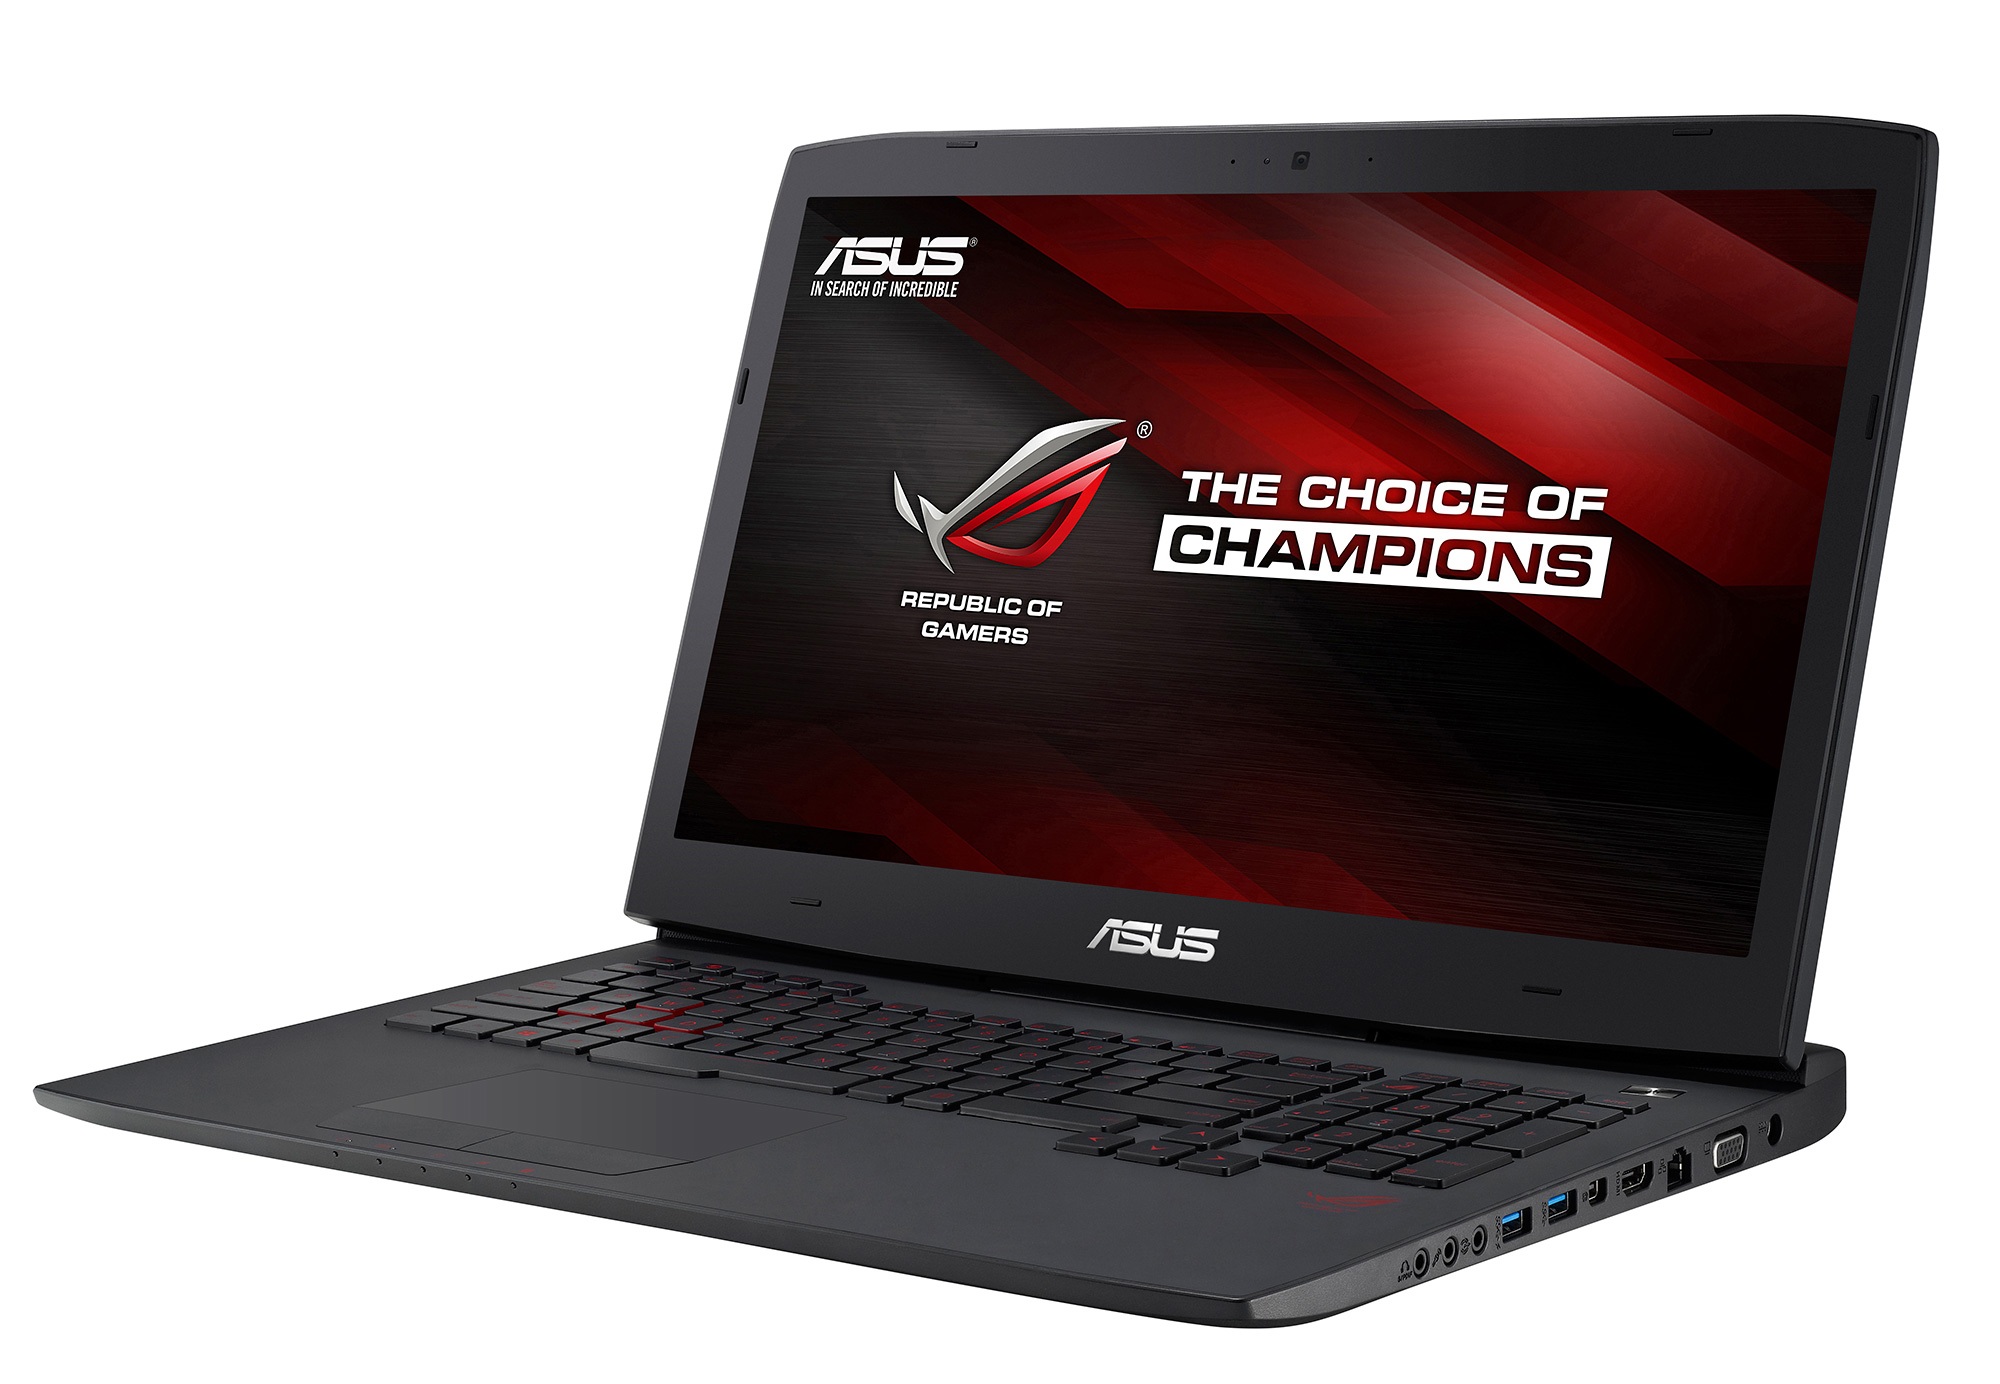 asus rog announces g751 gaming laptop with gtx 900m series graphics rog republic of gamers. Black Bedroom Furniture Sets. Home Design Ideas